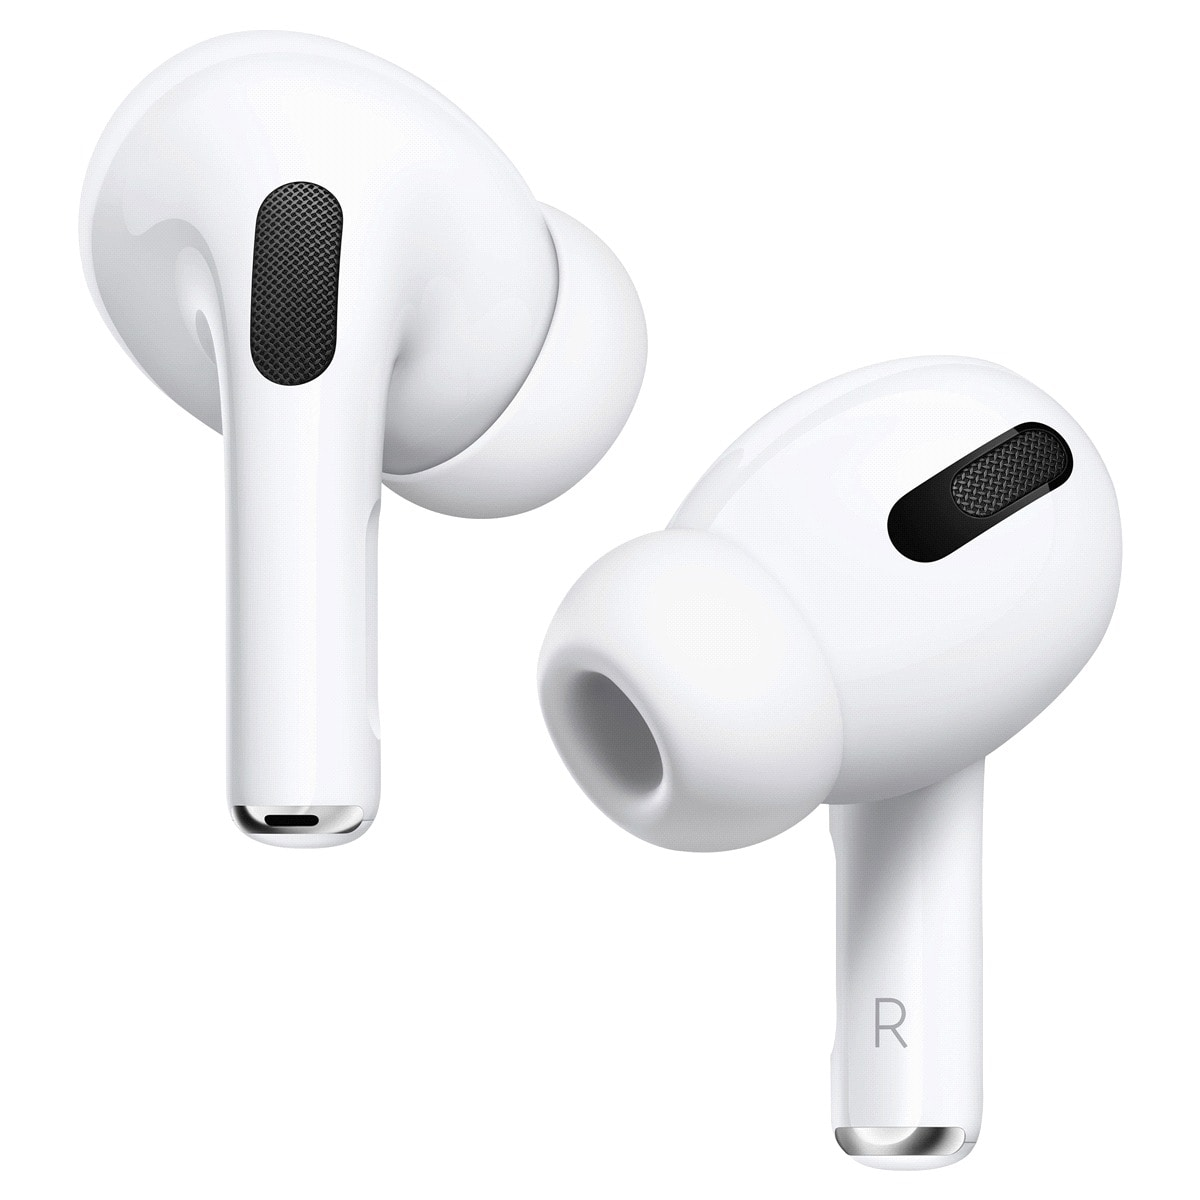 Apple AirPods Pro $179.00 + Free Pickup or $10 Shipping @ Meijer - $179.00